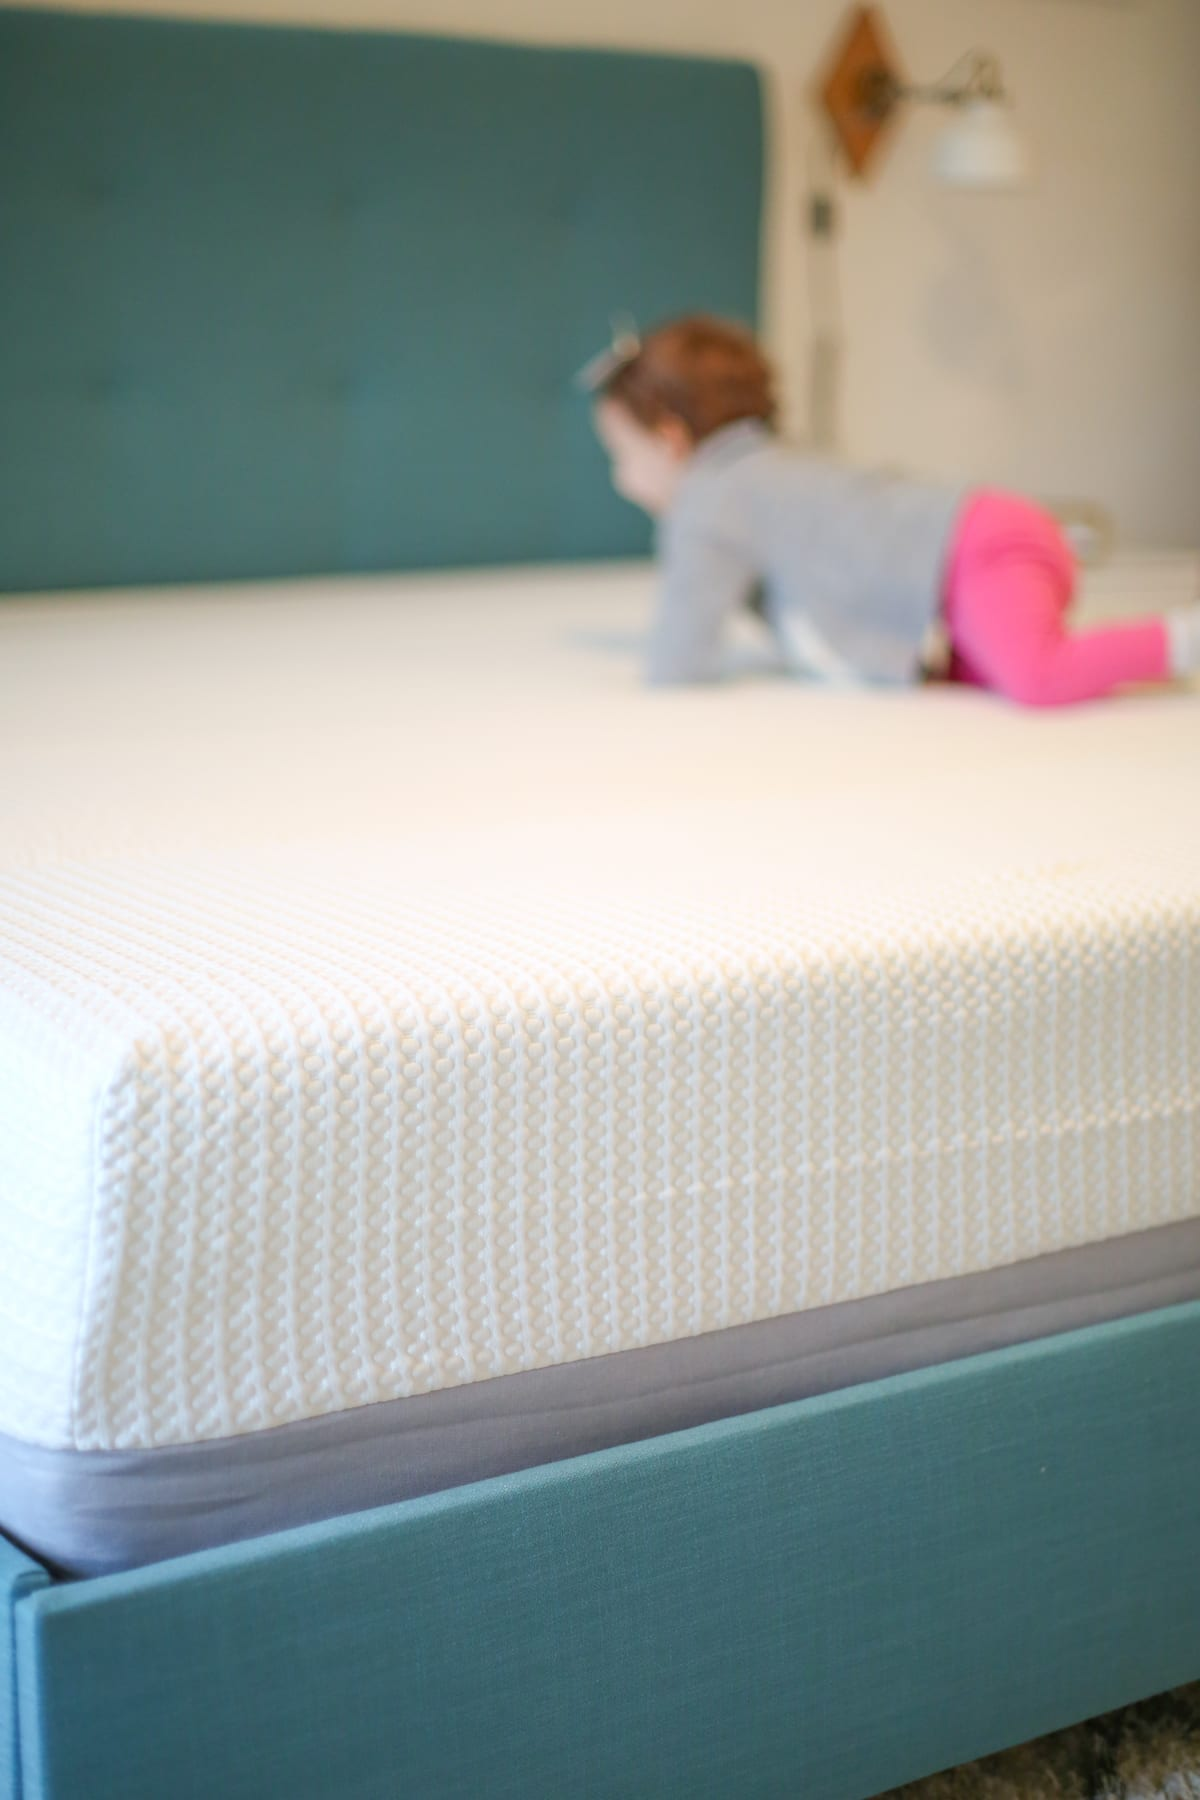 Nora memory foam mattress